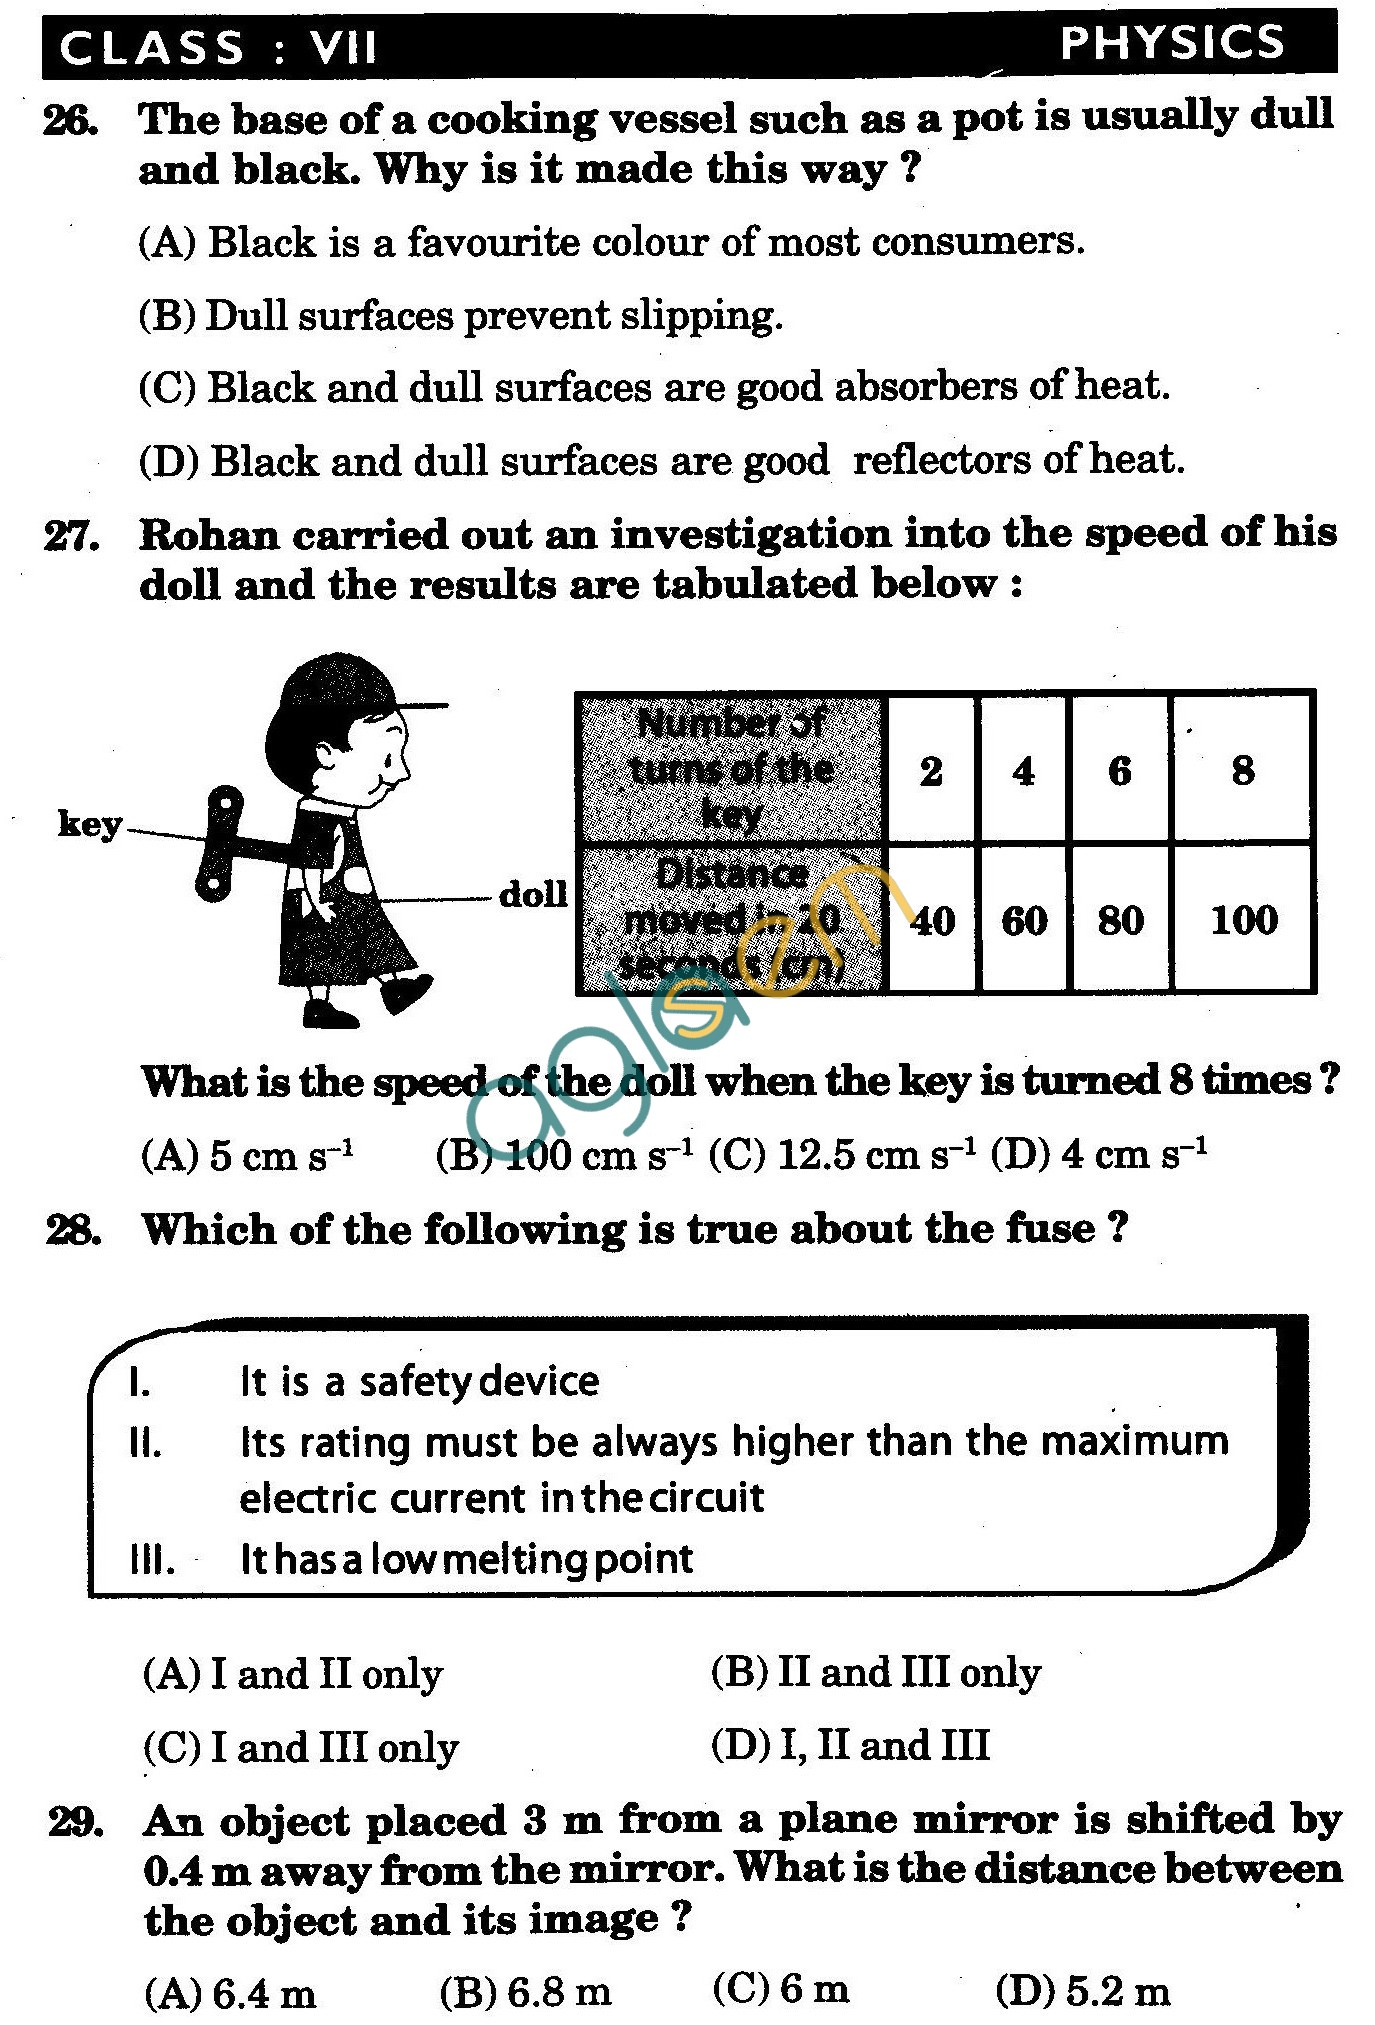 NSTSE 2010 Class VII Question Paper with Answers - Physics